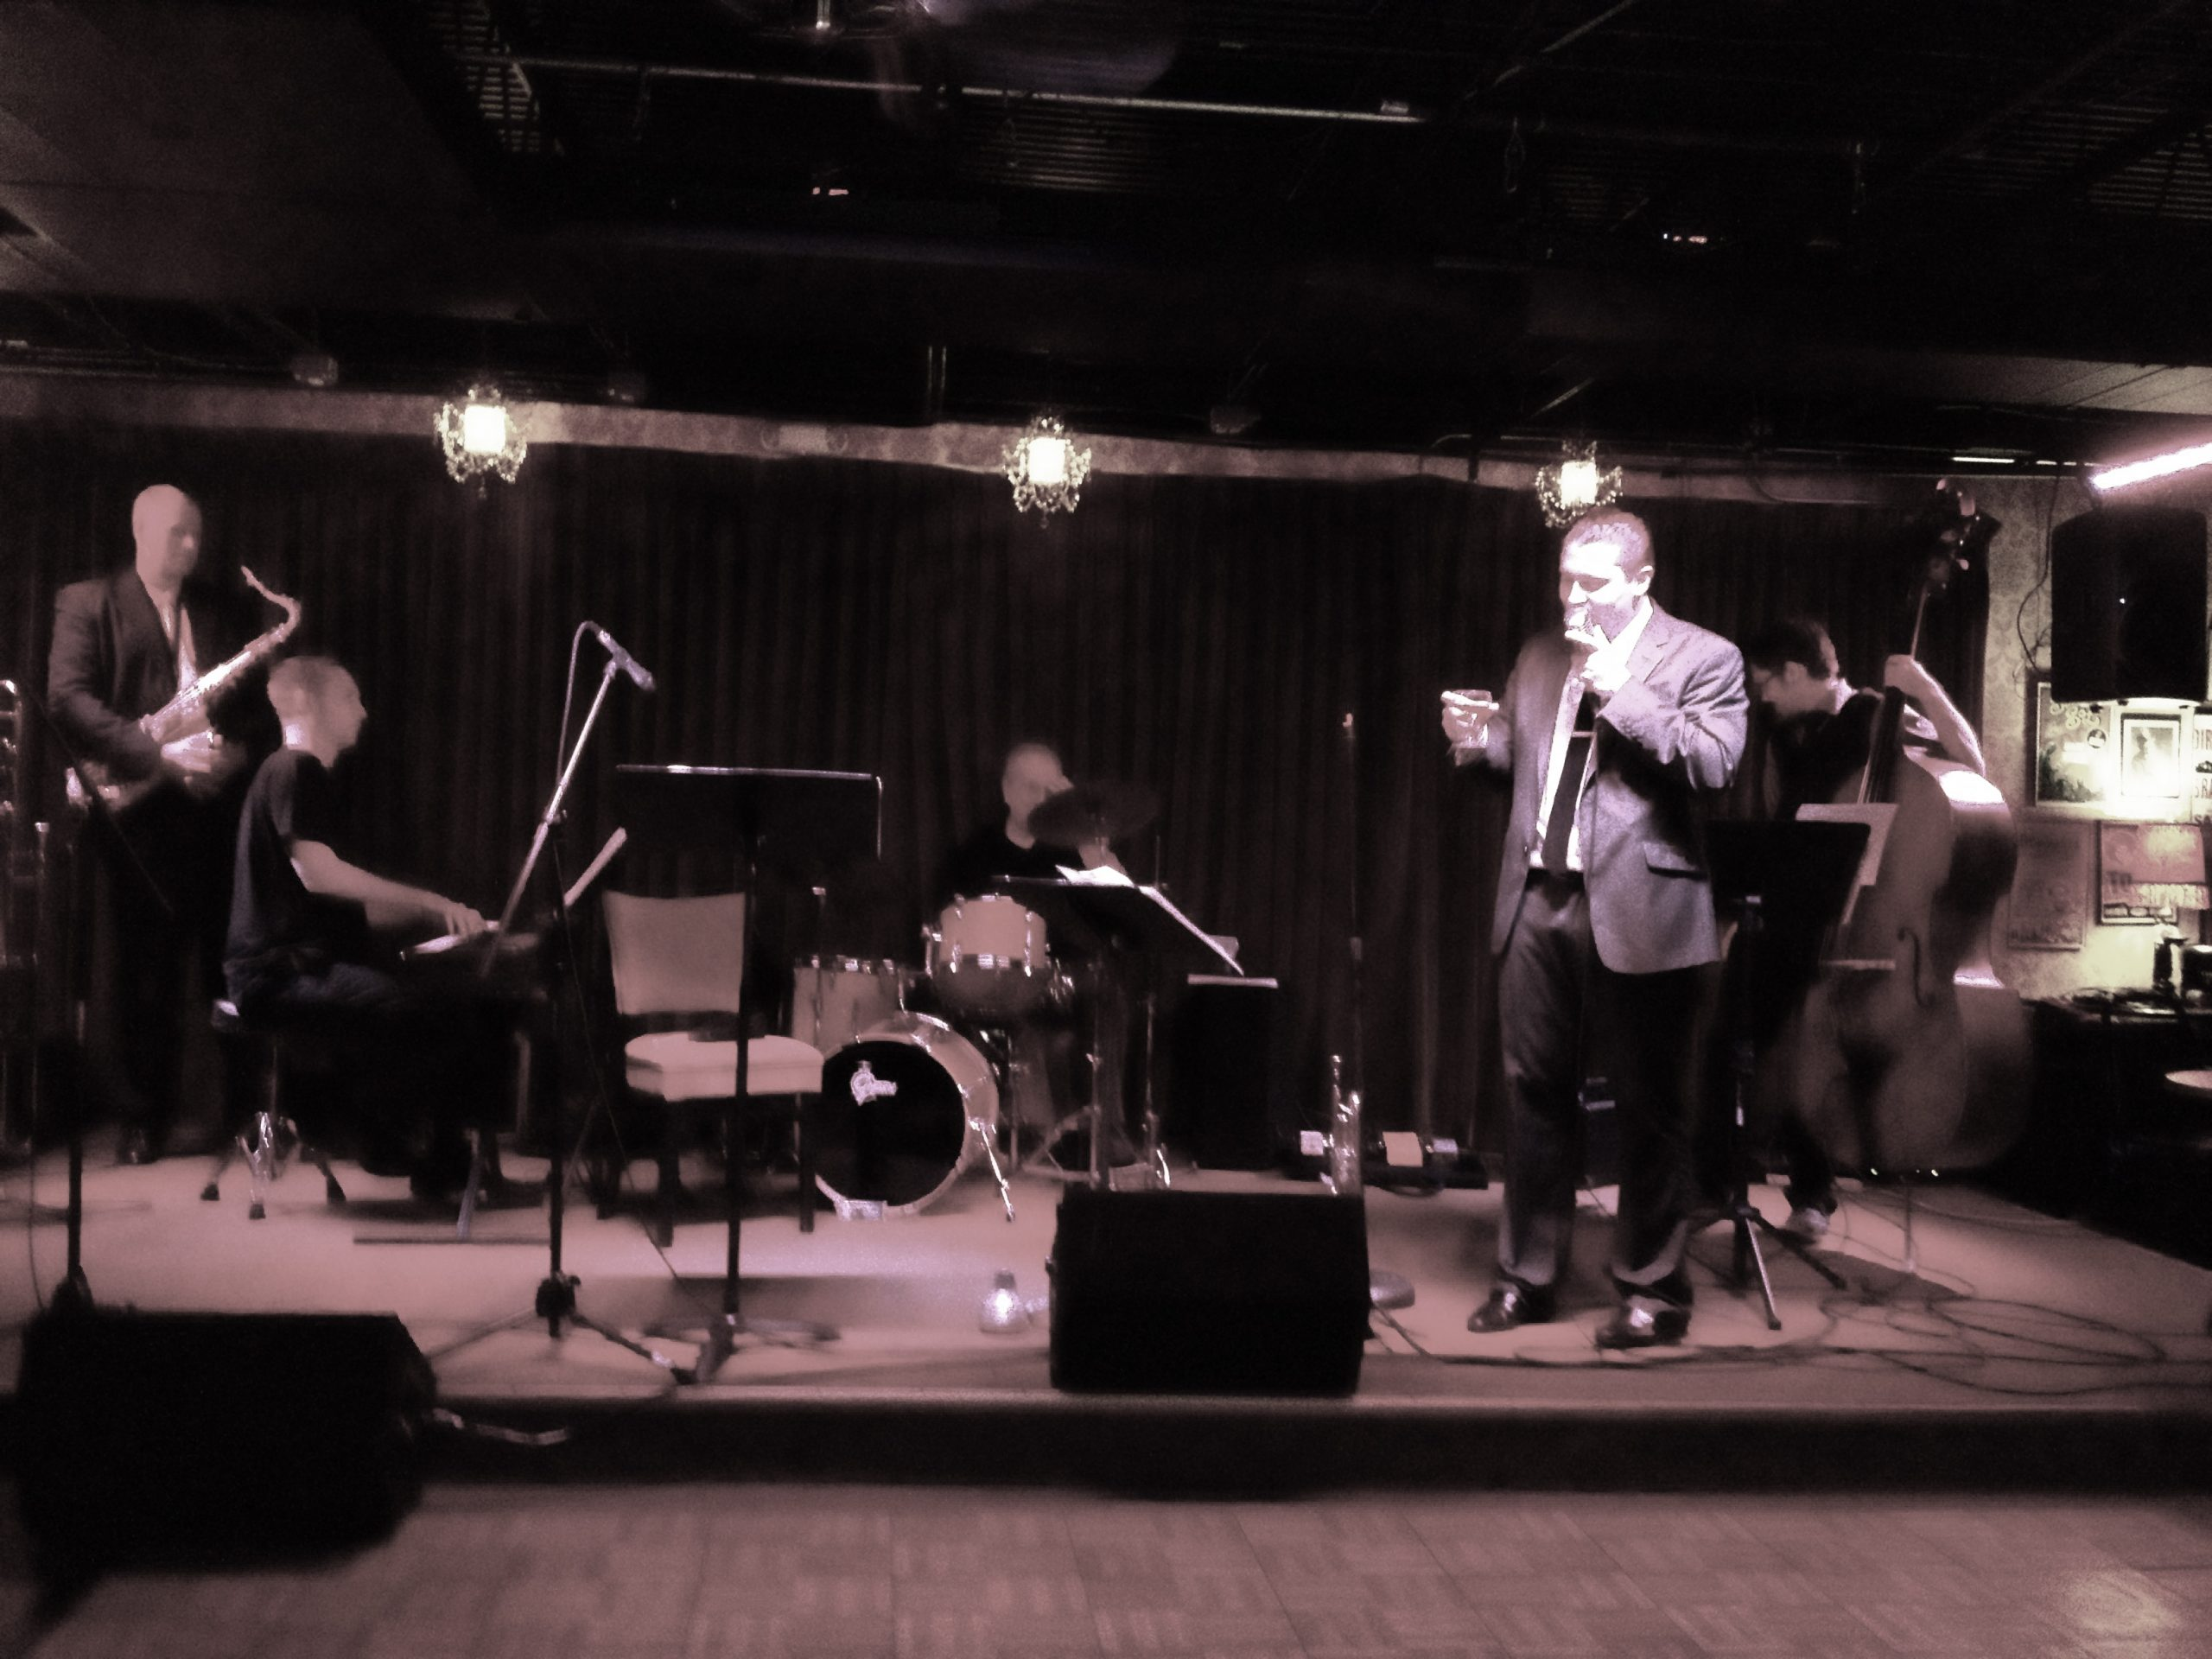 Johnny P and the Wiseguys play to a full house at Luna jazz club on San Pedro Avenue. Photo by Adam Tutor.